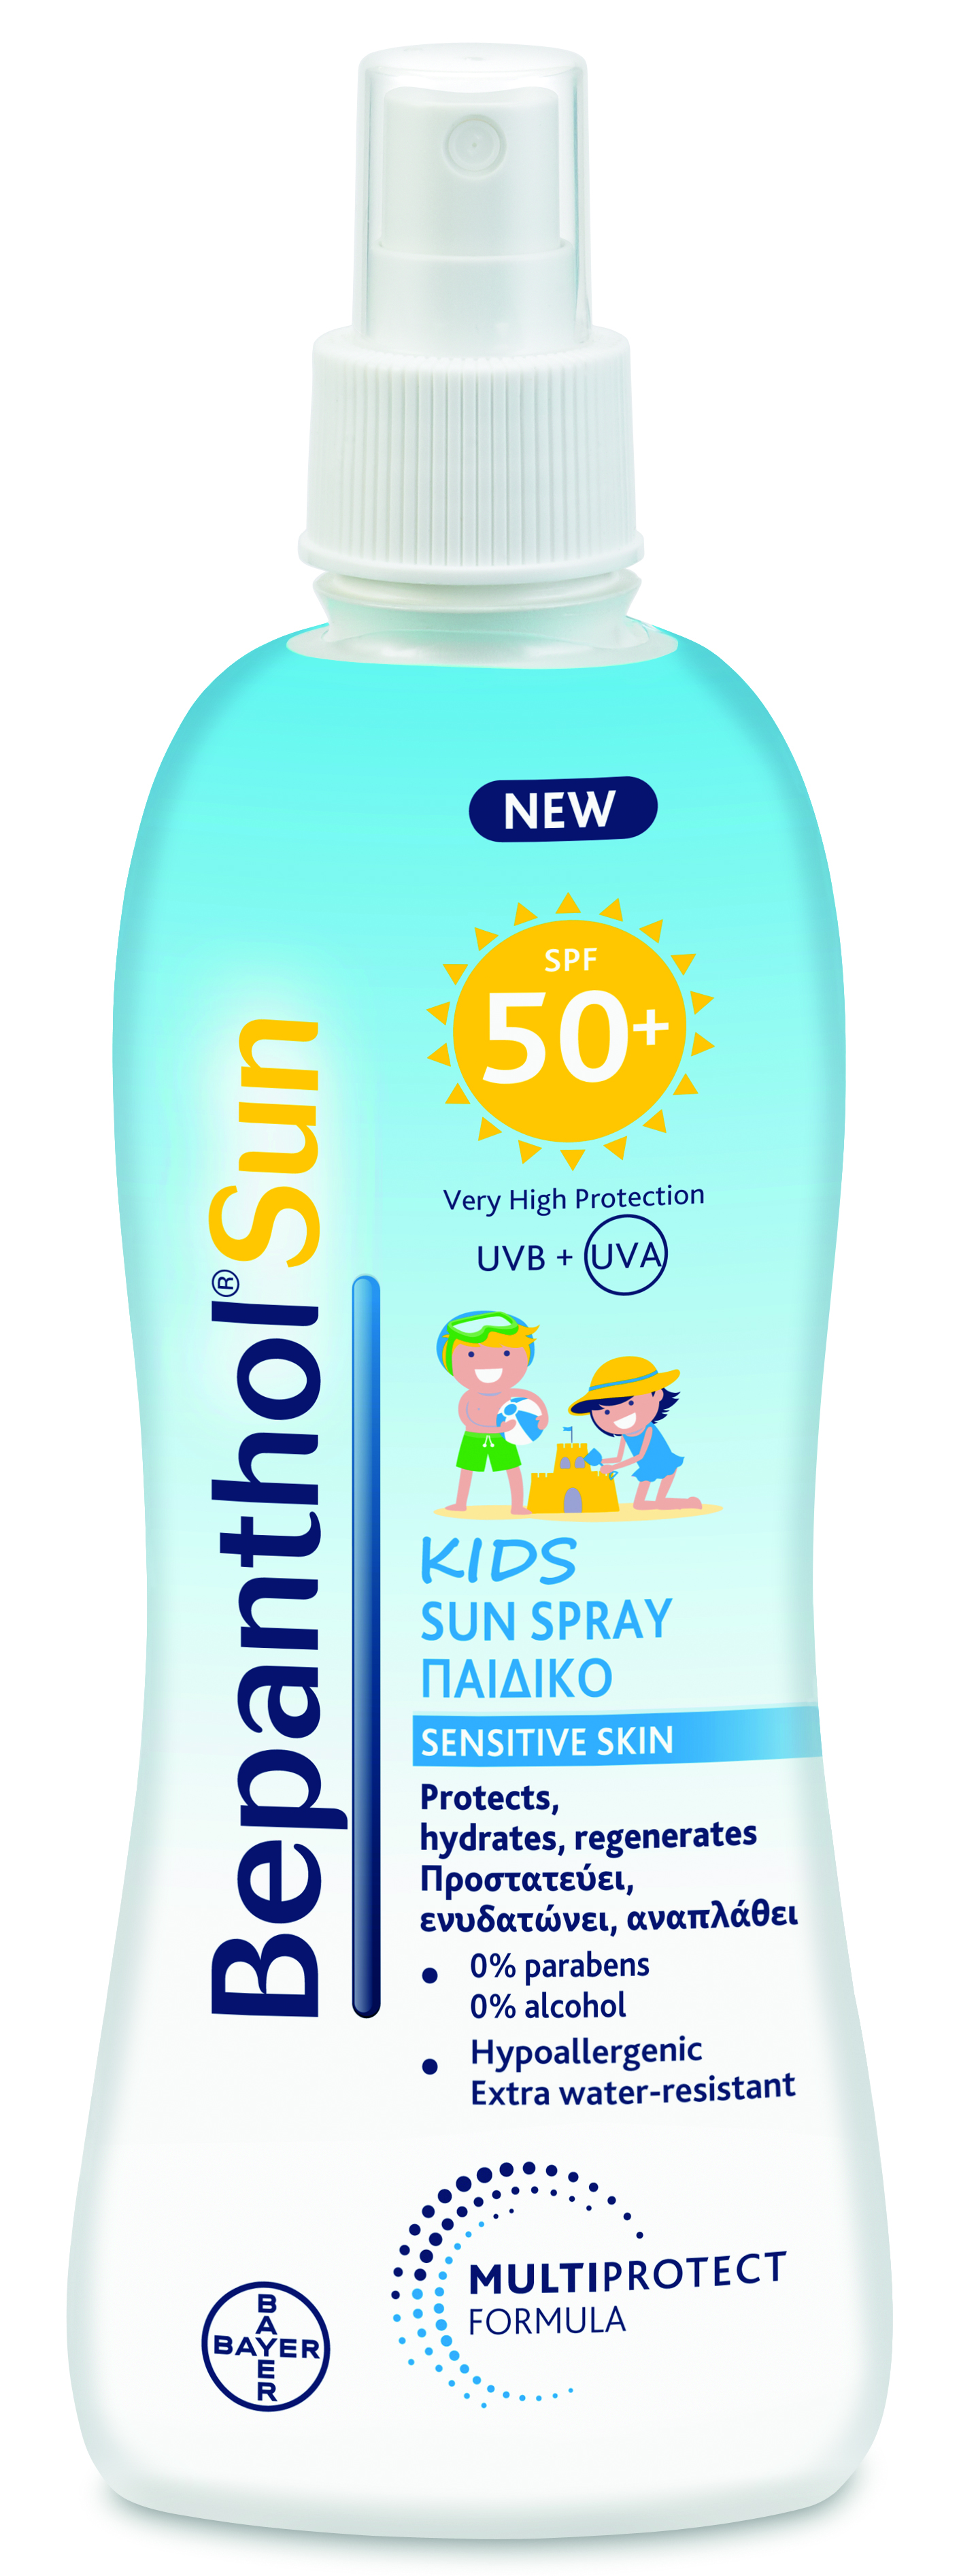 Bepanthol Sun Kids Spray Παιδικό Sensitive Skin SPF50+ 200ml